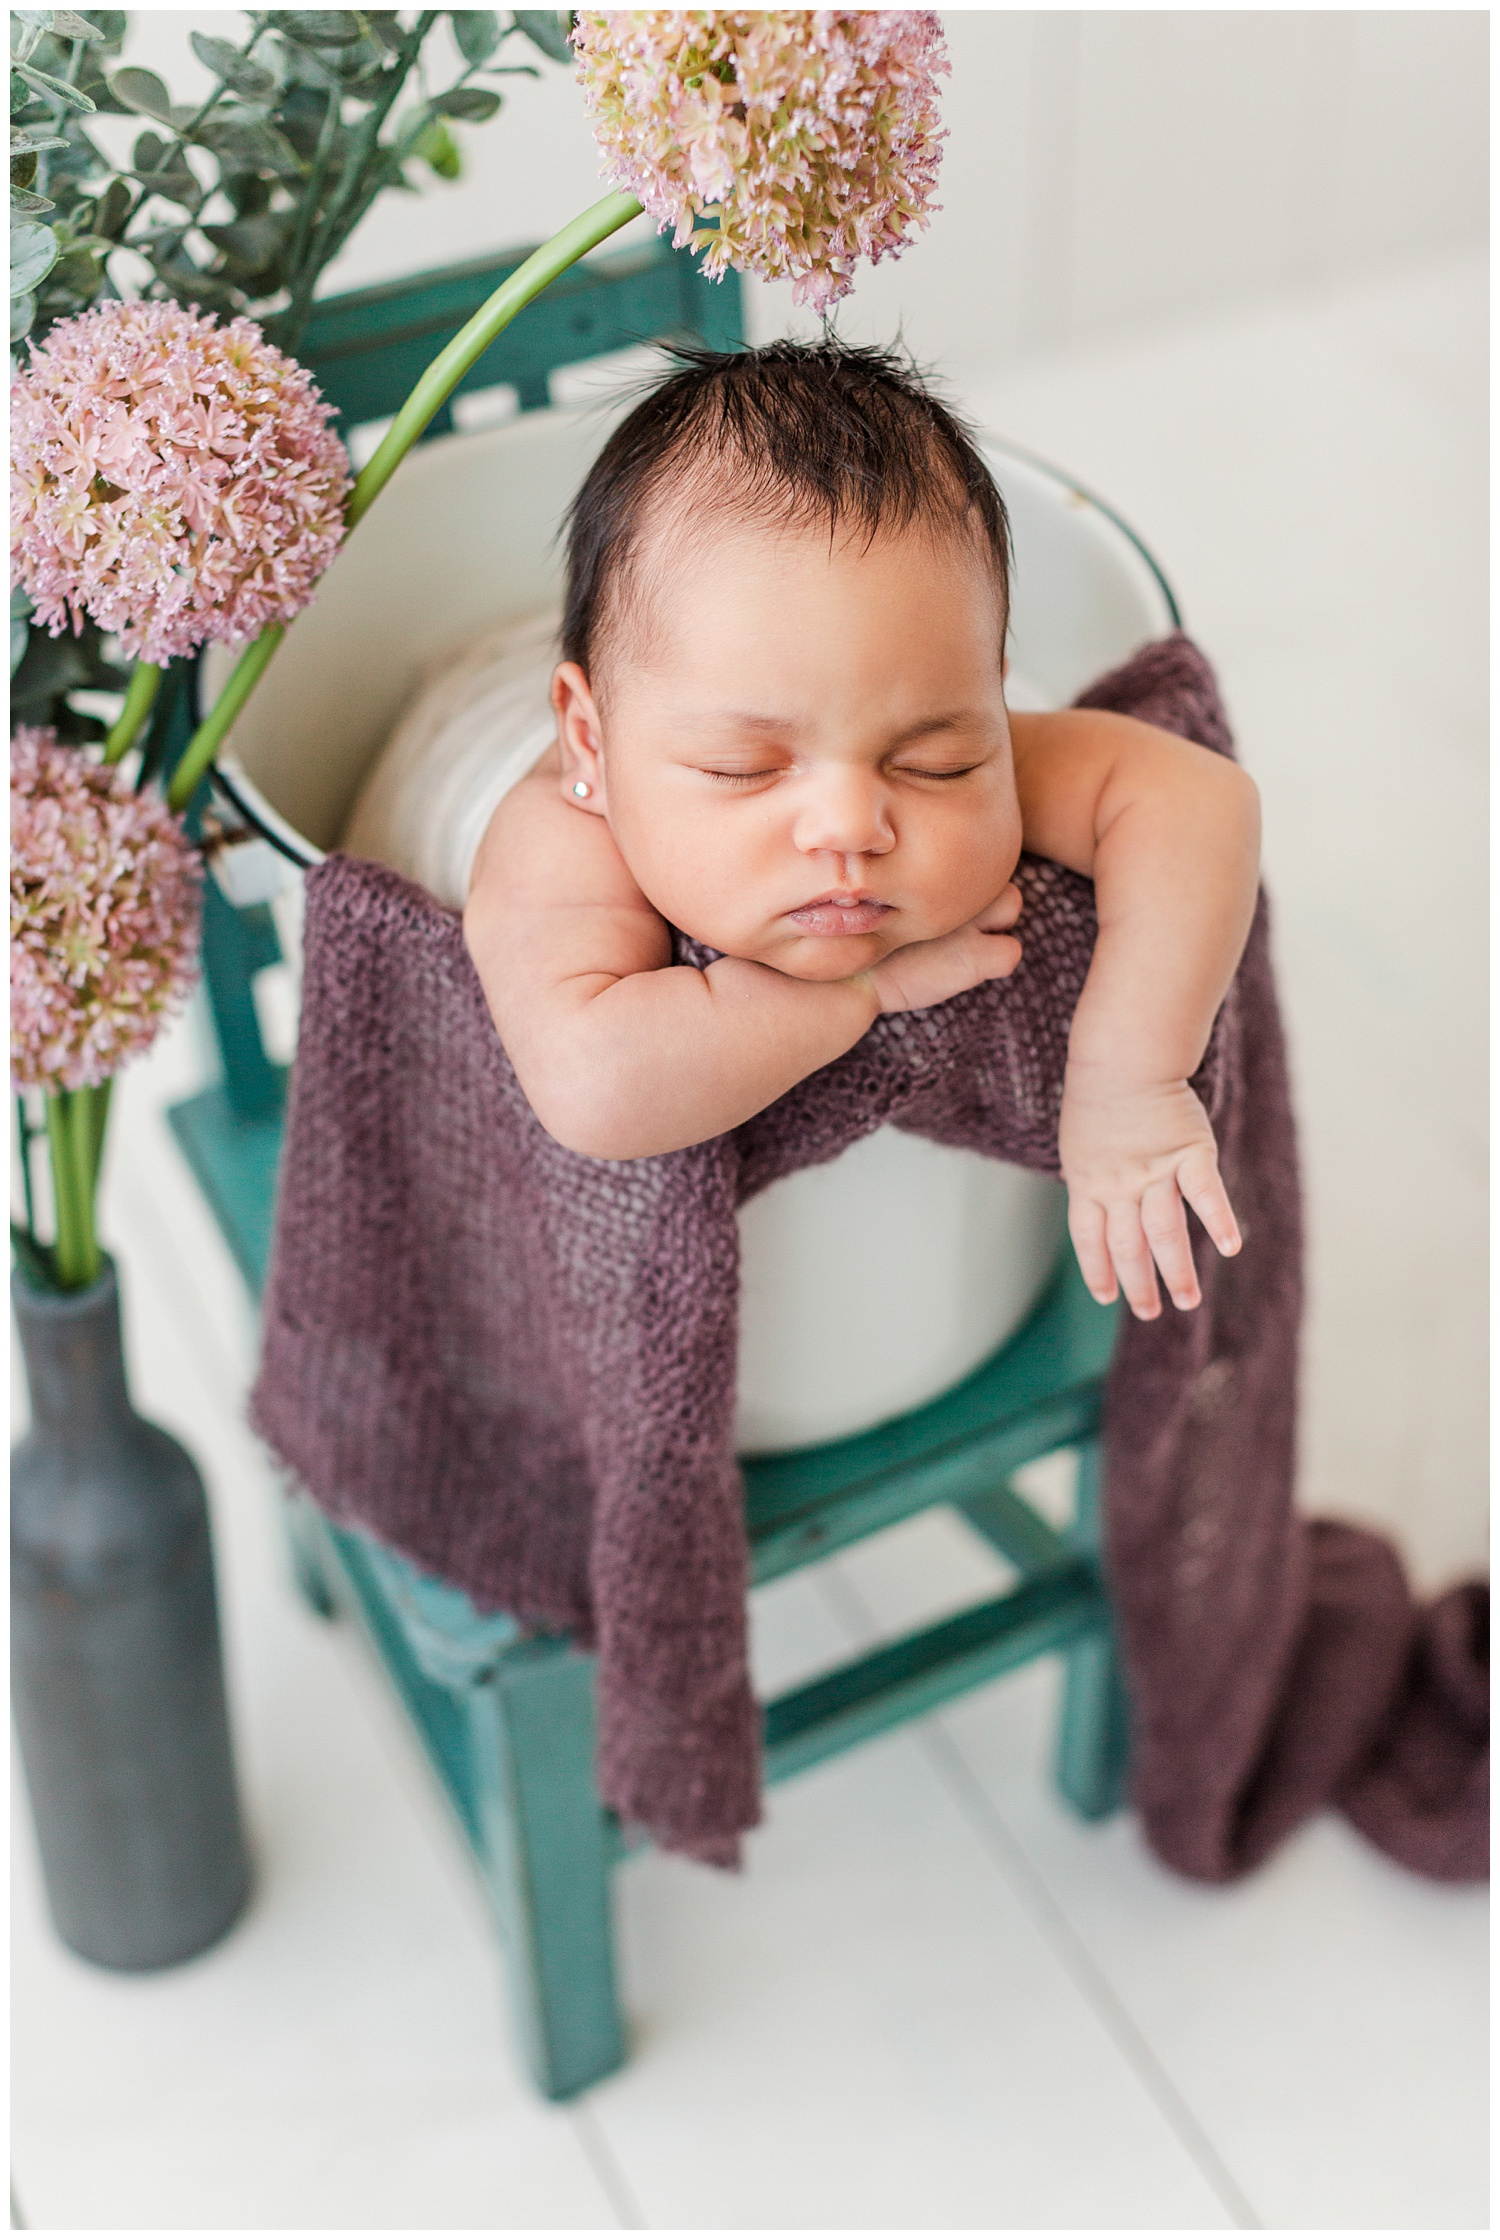 Newborn baby Alyssa snuggled in a white bucket resting on a teal chair with beautiful pink florals surrounding her | CB Studio